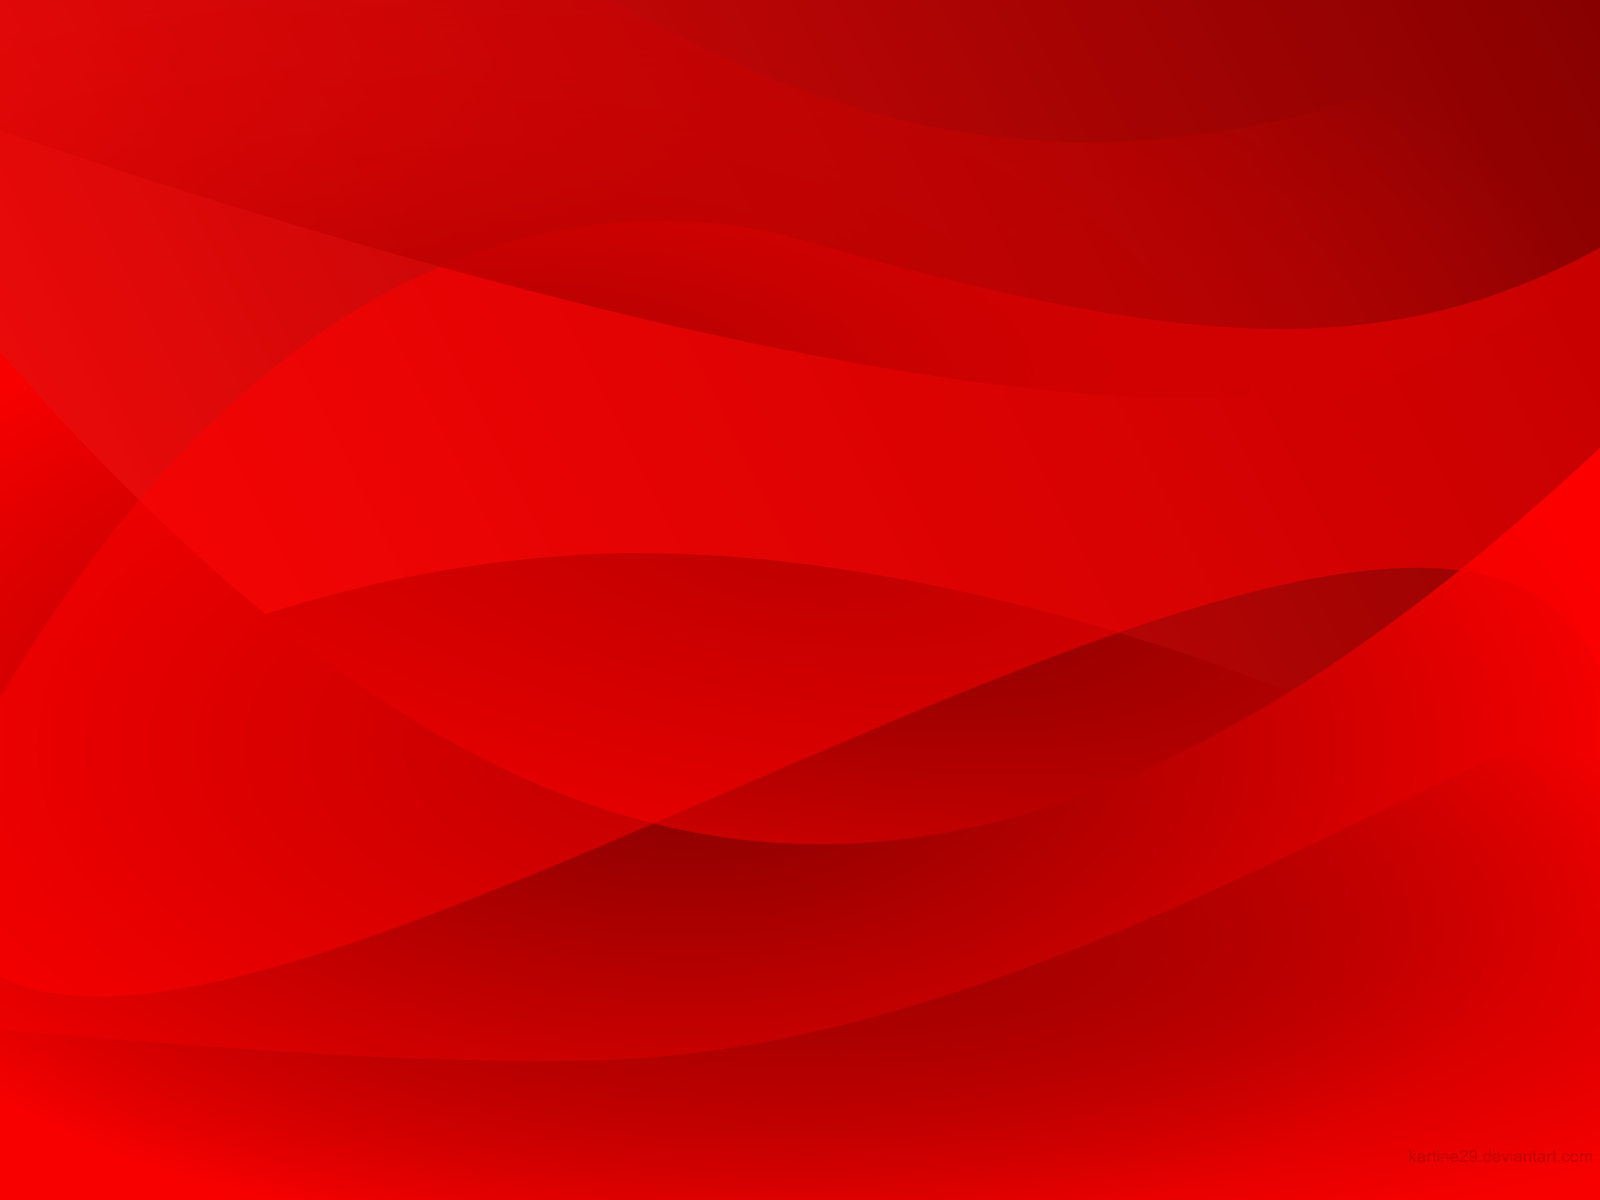 red abstract 1600x1200 by kartine29 on DeviantArt